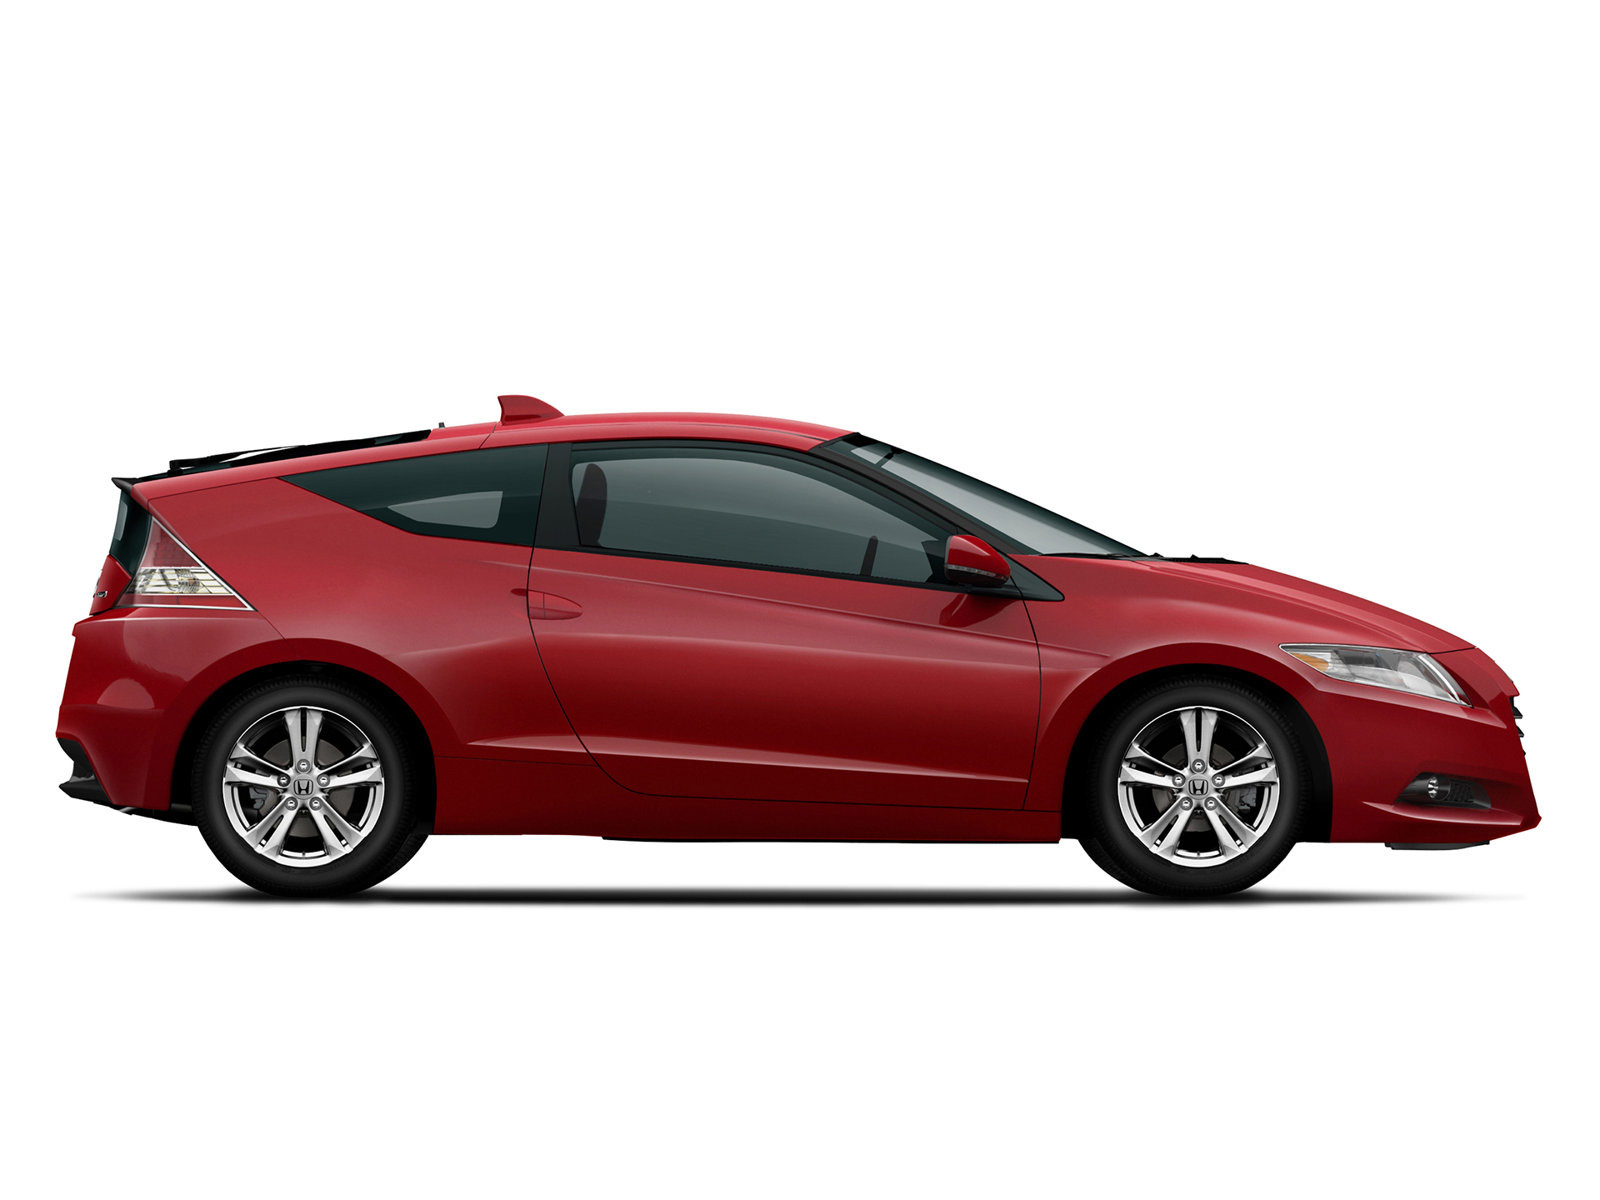 honda cr-z 2011 pictures